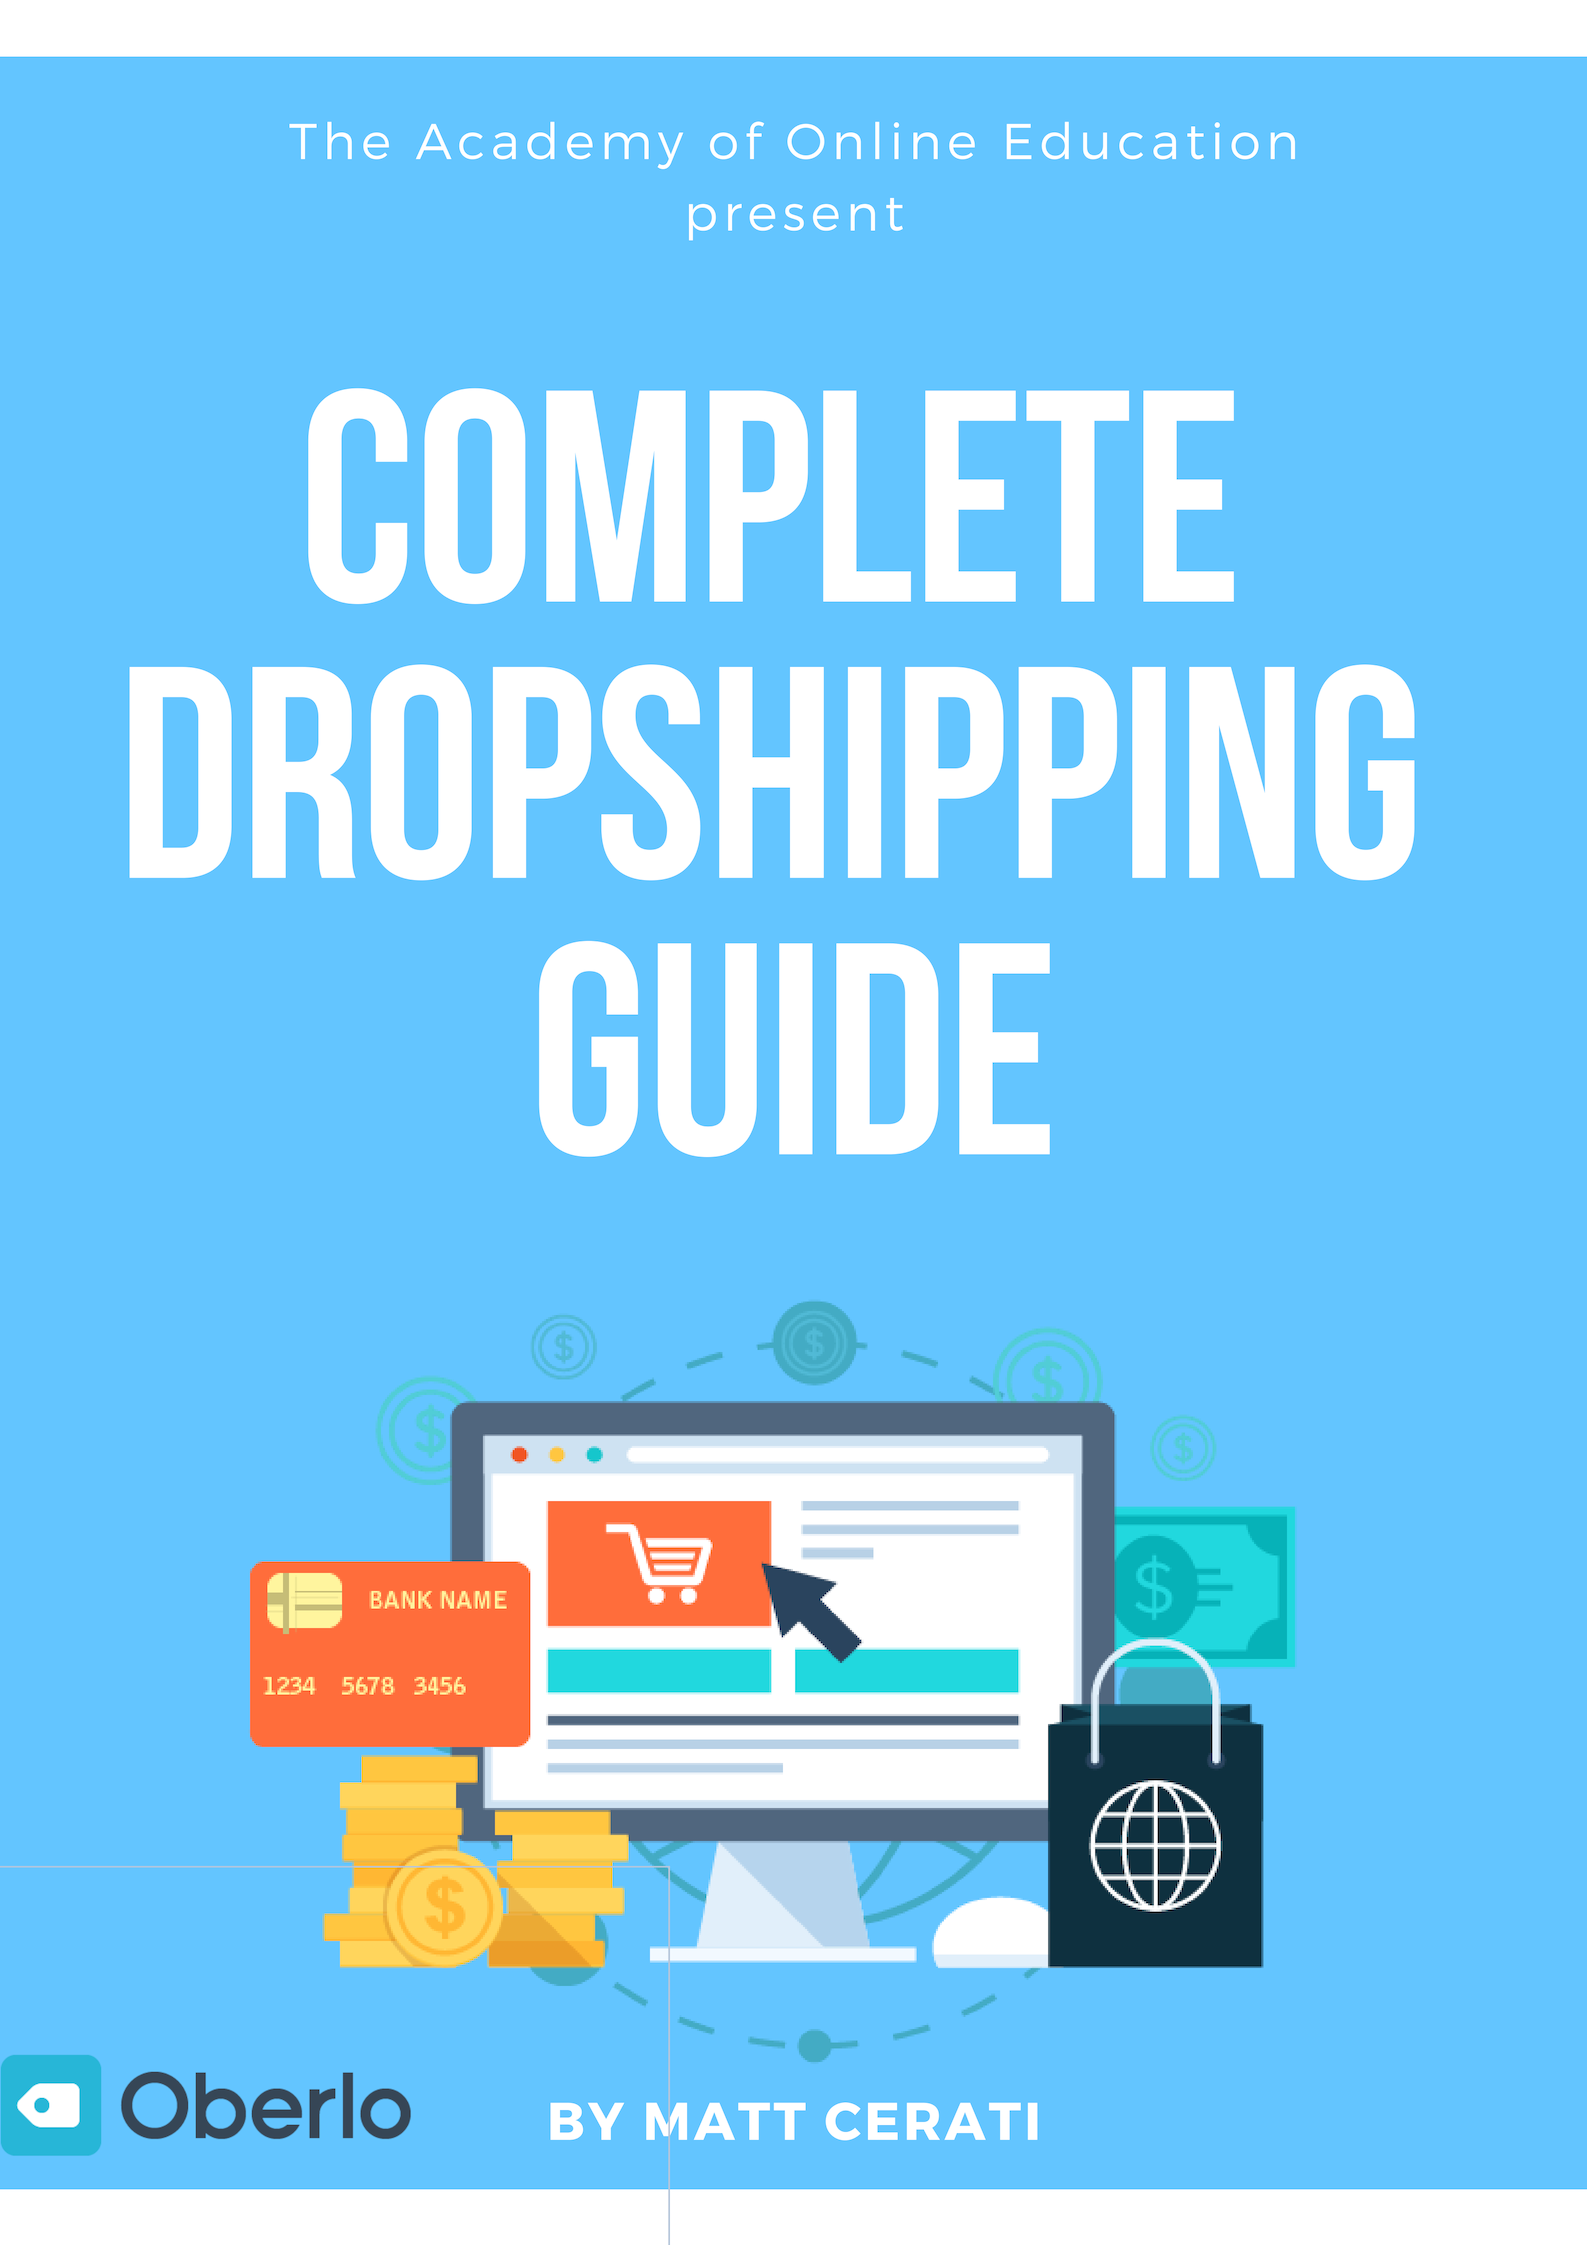 complete dropshipping guide by Matt Cerati